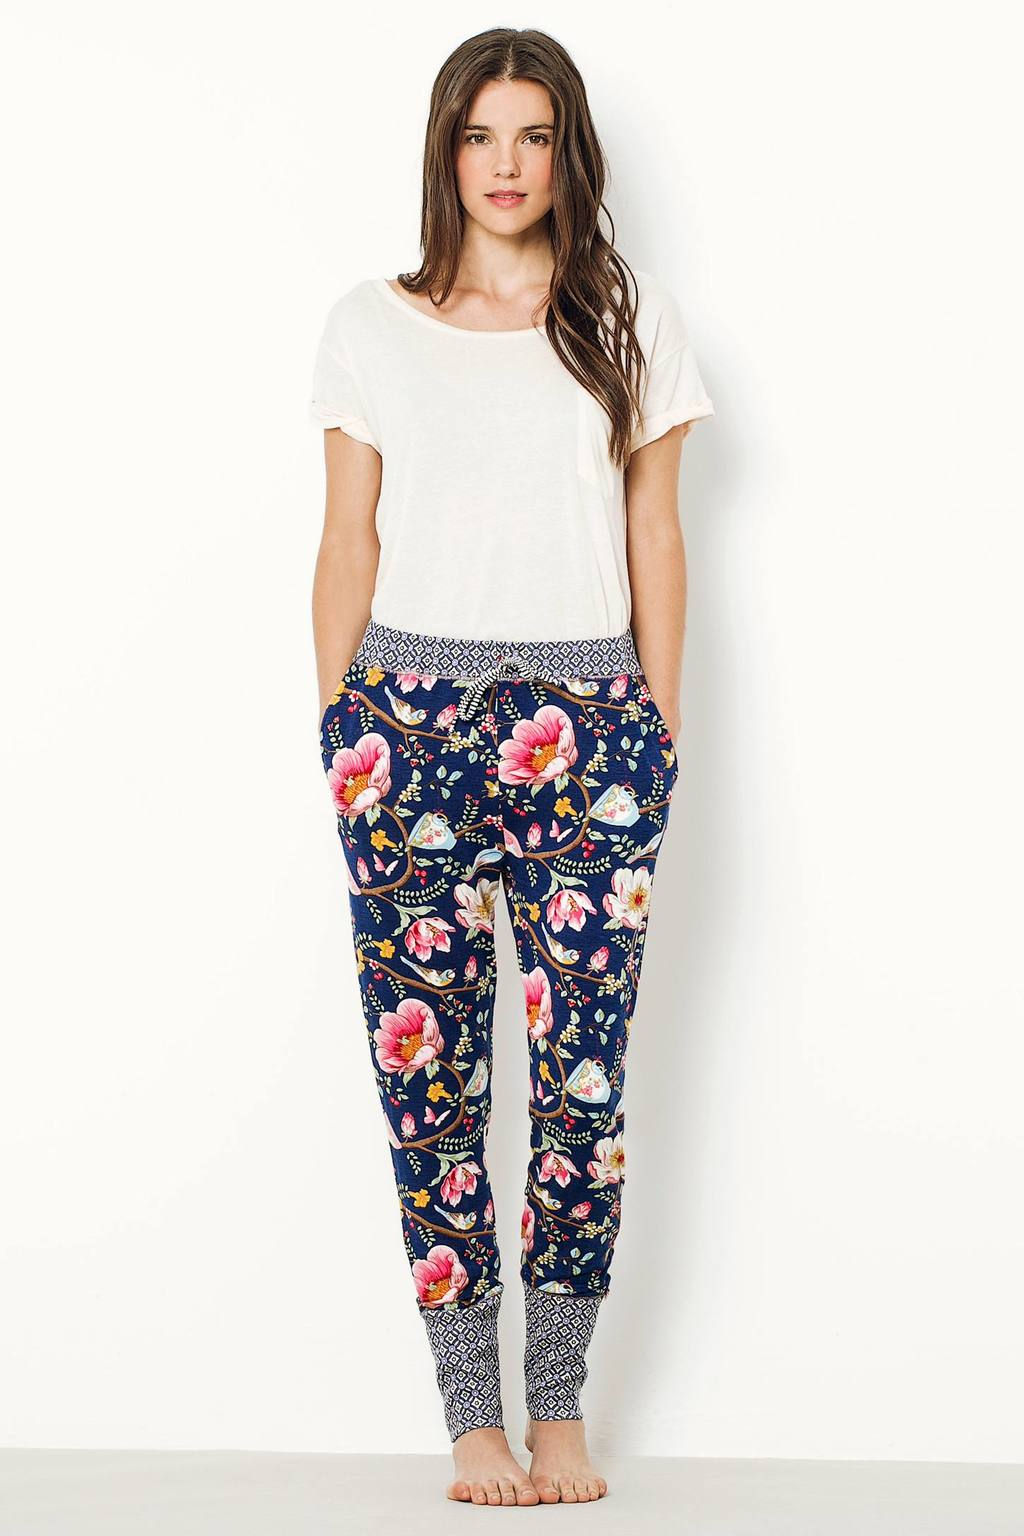 Briar Floral Pyjama Bottoms, Blue - length: standard; style: harem/slouch; waist: mid/regular rise; secondary colour: hot pink; predominant colour: navy; occasions: casual; fibres: cotton - stretch; fit: tapered; pattern type: fabric; pattern: florals; texture group: jersey - stretchy/drapey; multicoloured: multicoloured; season: a/w 2016